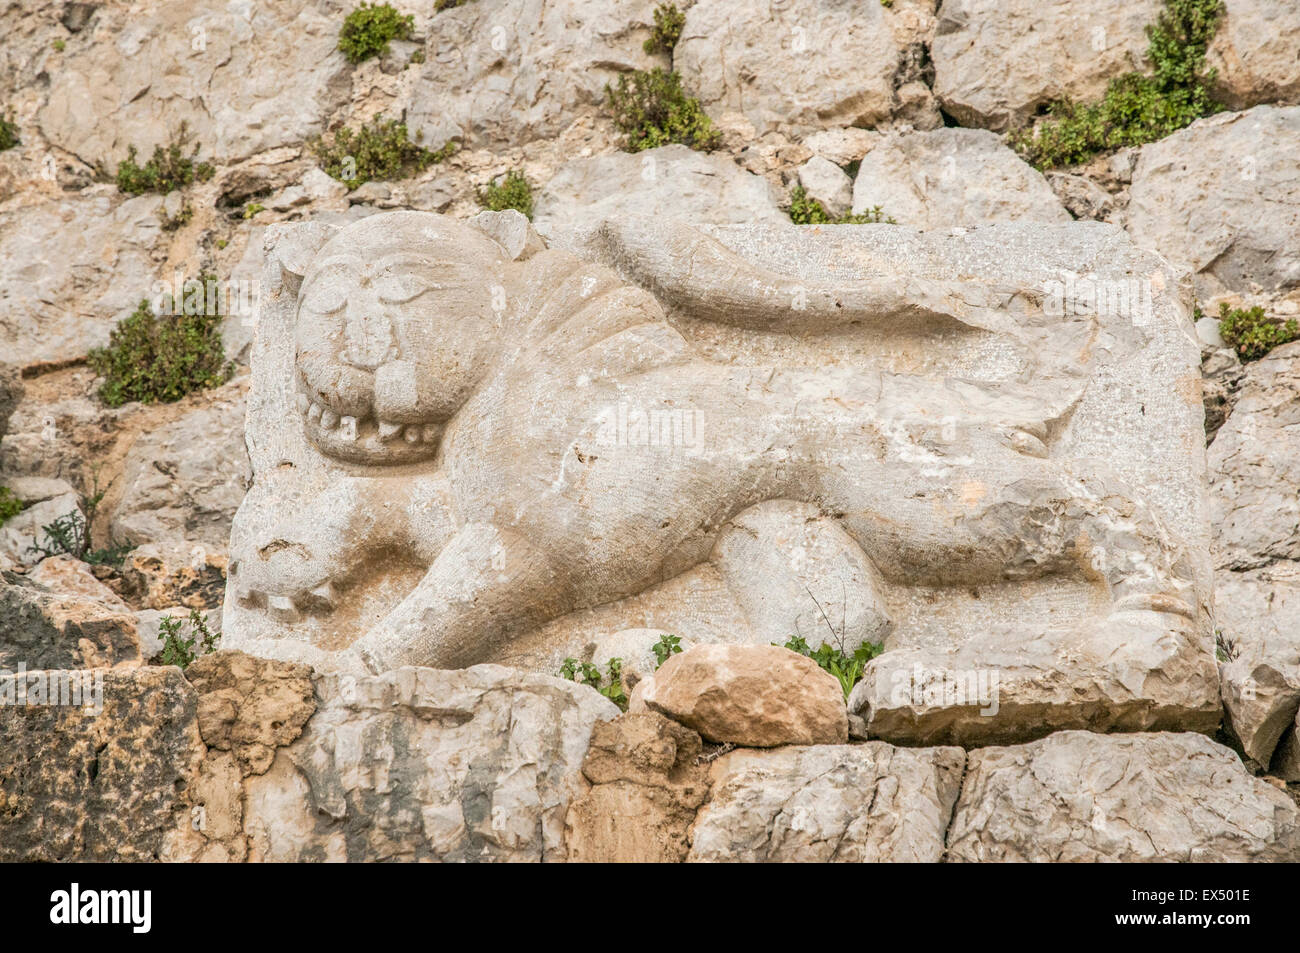 Israel, Golan Heights, remains of the Nimrod Fortress details of the lion bas relief - Stock Image